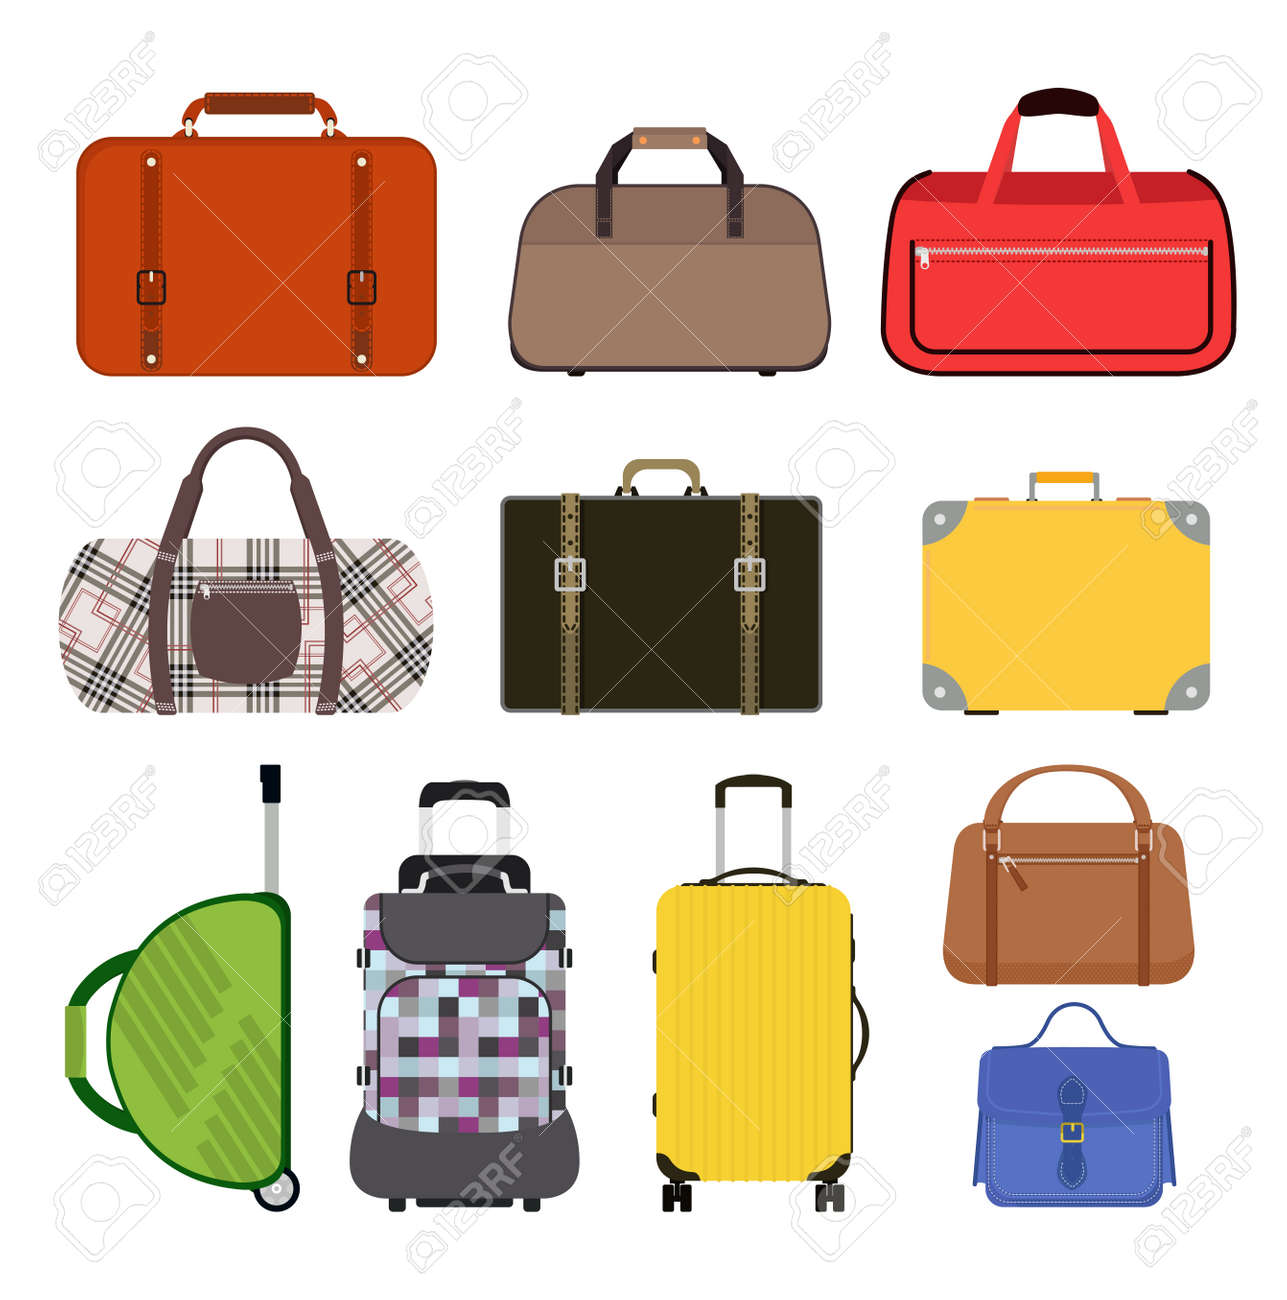 travel bag vector illustration icons collection travel bags rh 123rf com bag vector template bag vector free download